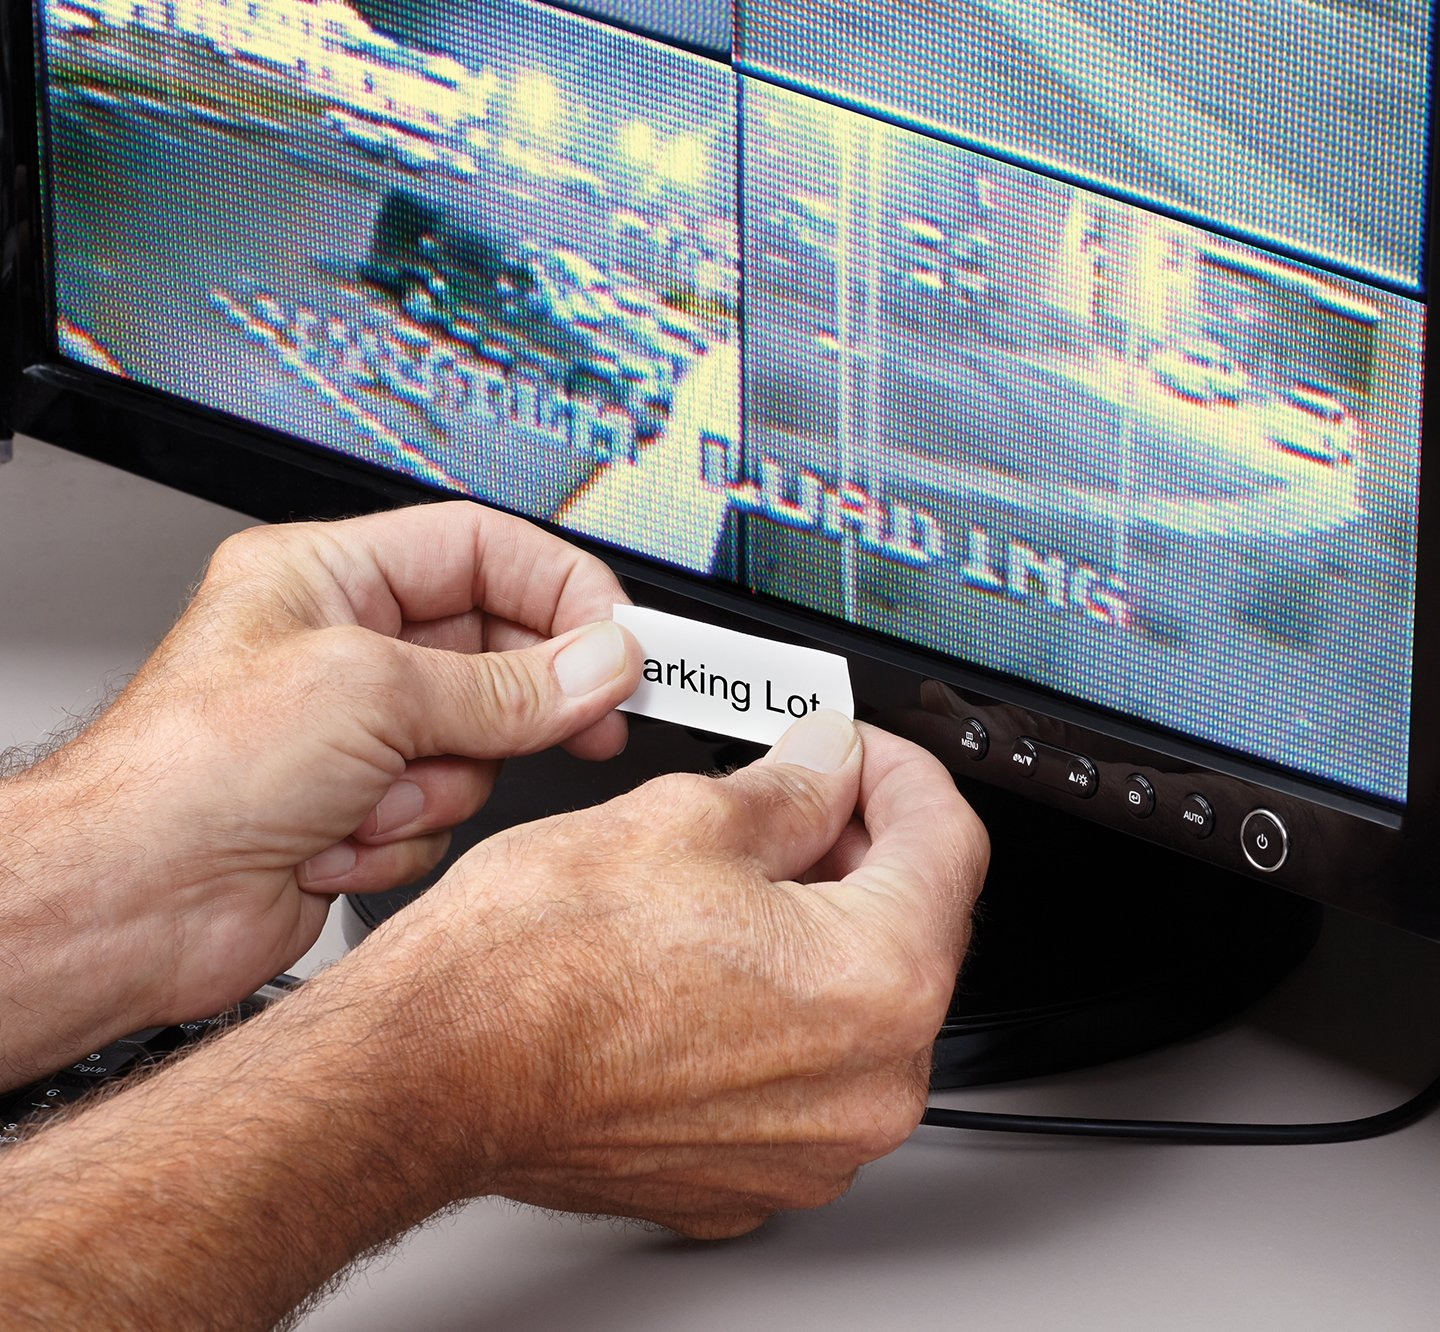 Hands placing a label onto a security monitor.